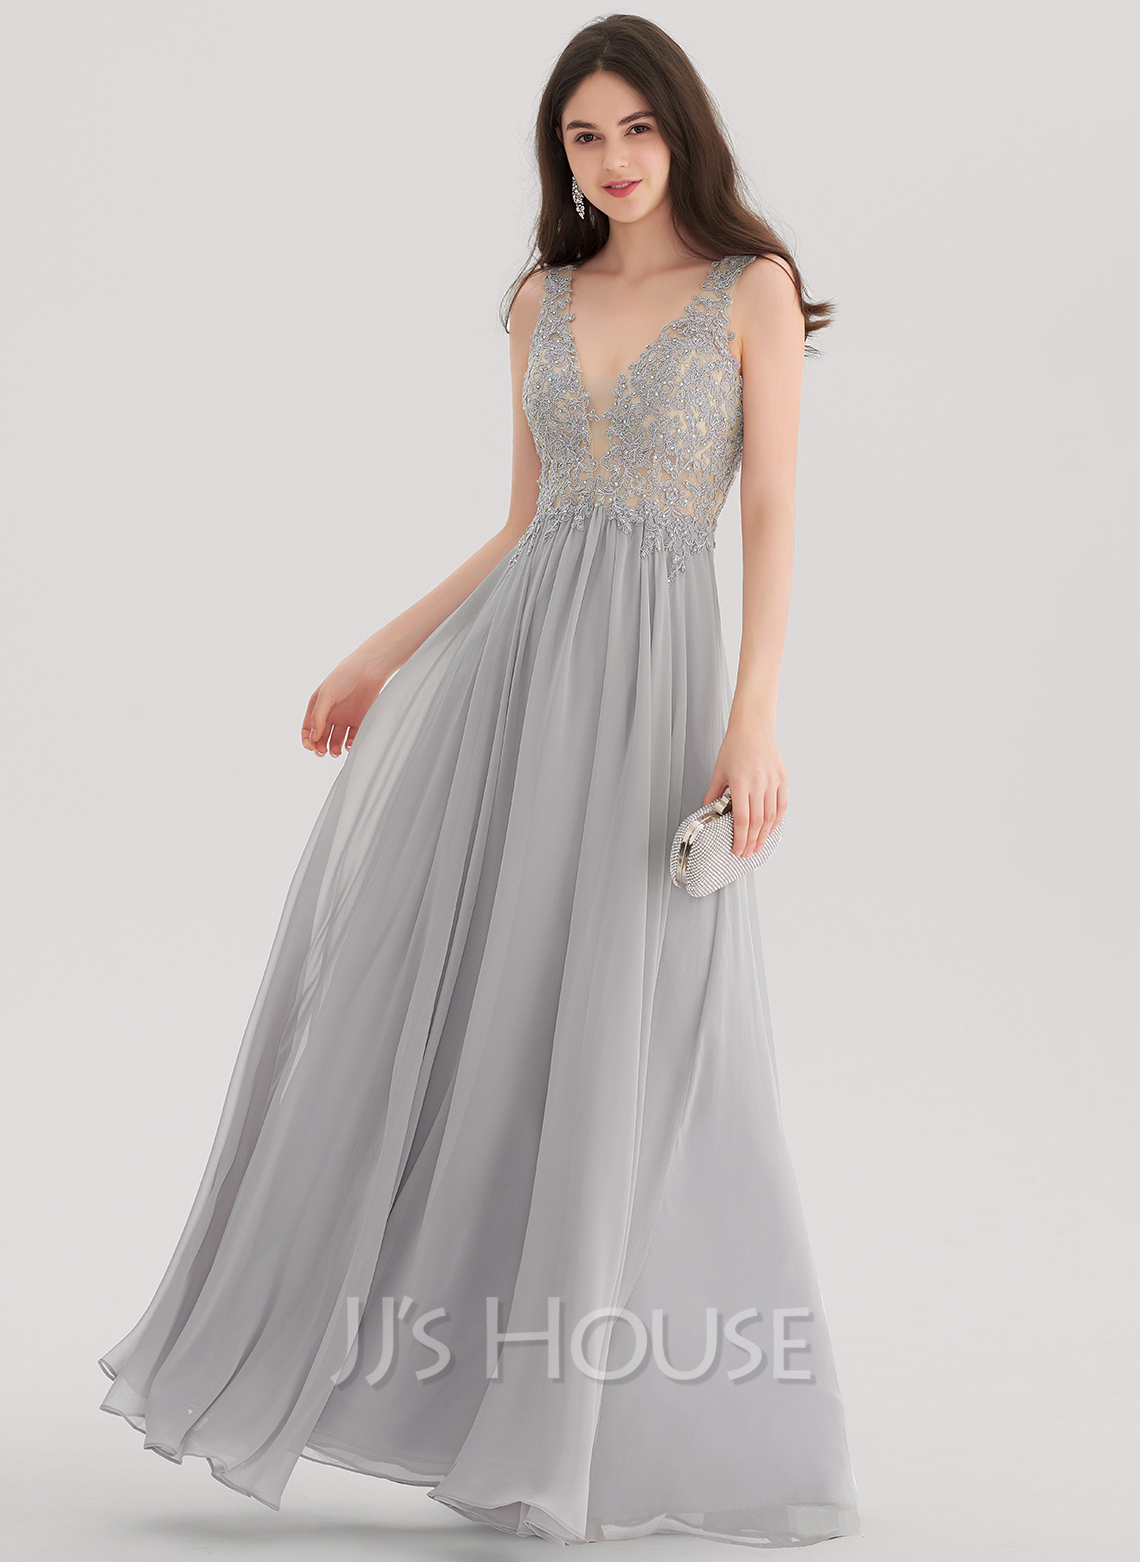 Special Occasion Dresses Formal Dresses And More Jjshouse